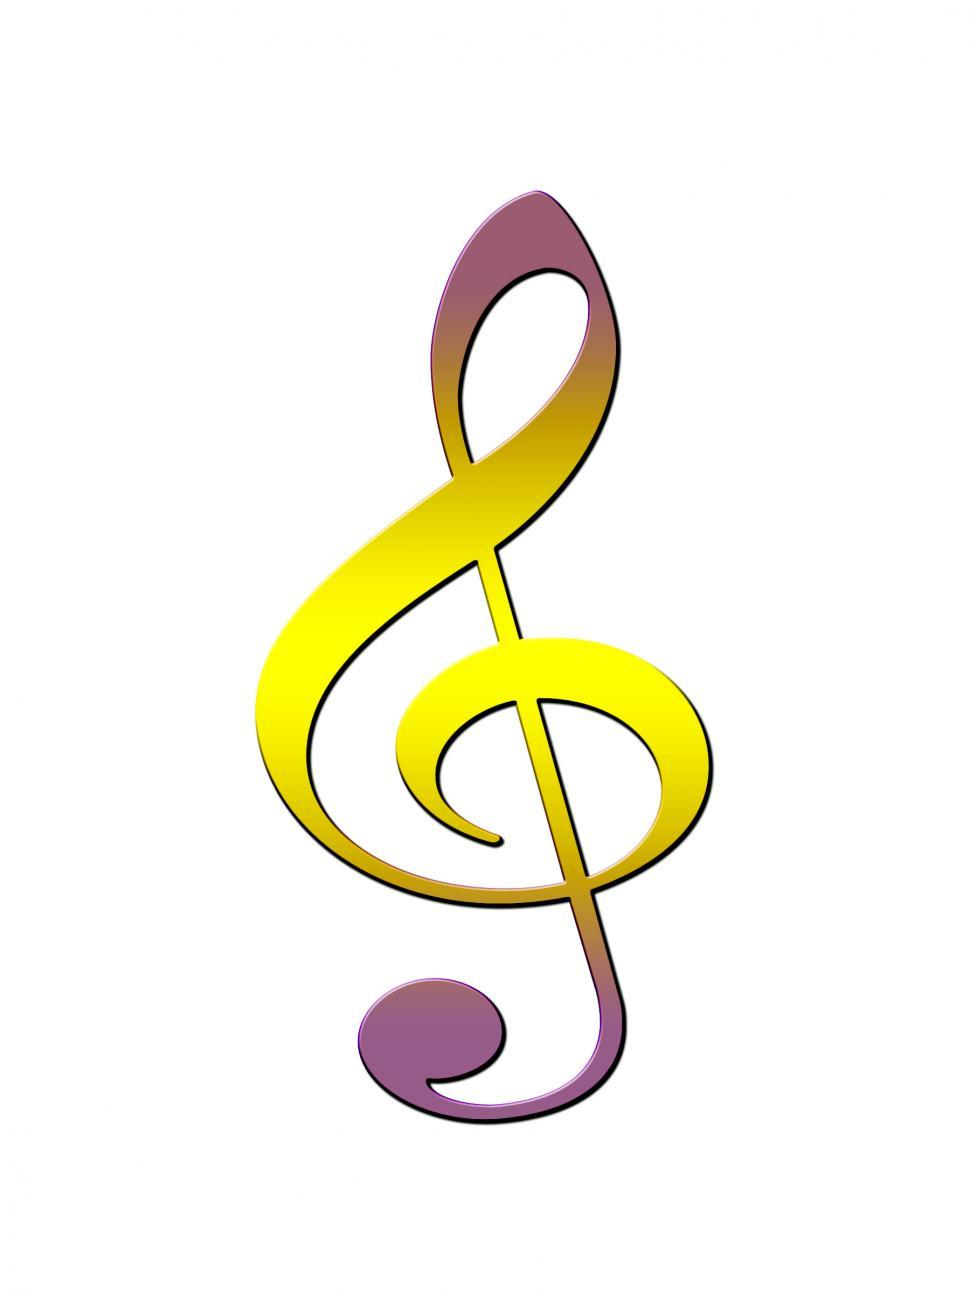 Download Free Stock Photo of Treble clef